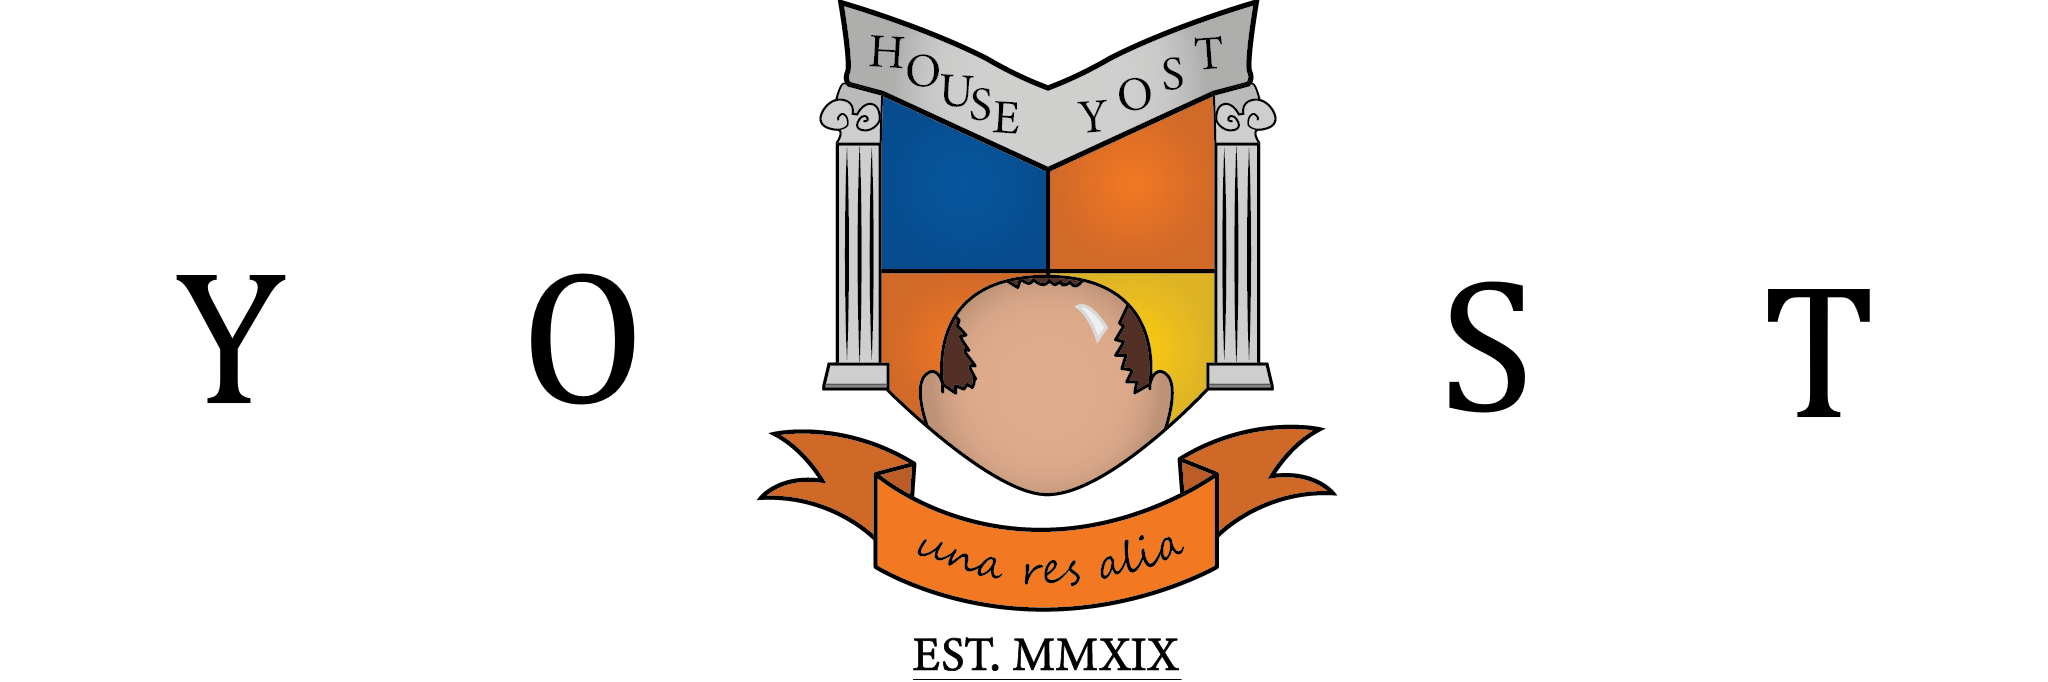 Yost_Banner.png